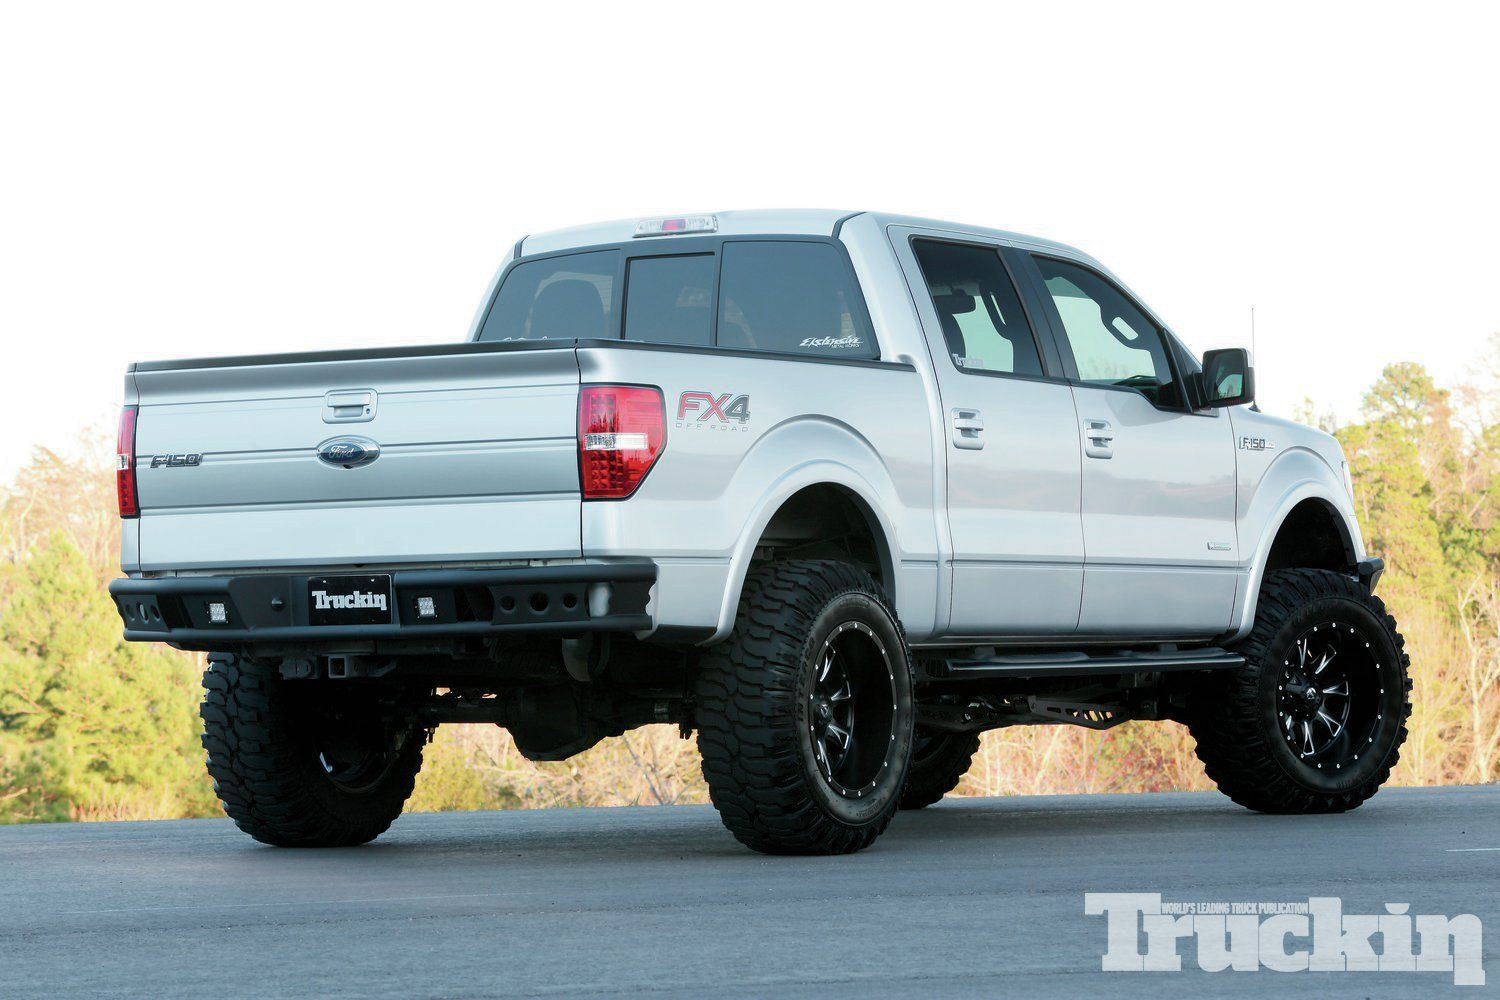 Images about trucks amp cars on pinterest ford trucks and ford trucks - 2012 Ford F 150 Trucks